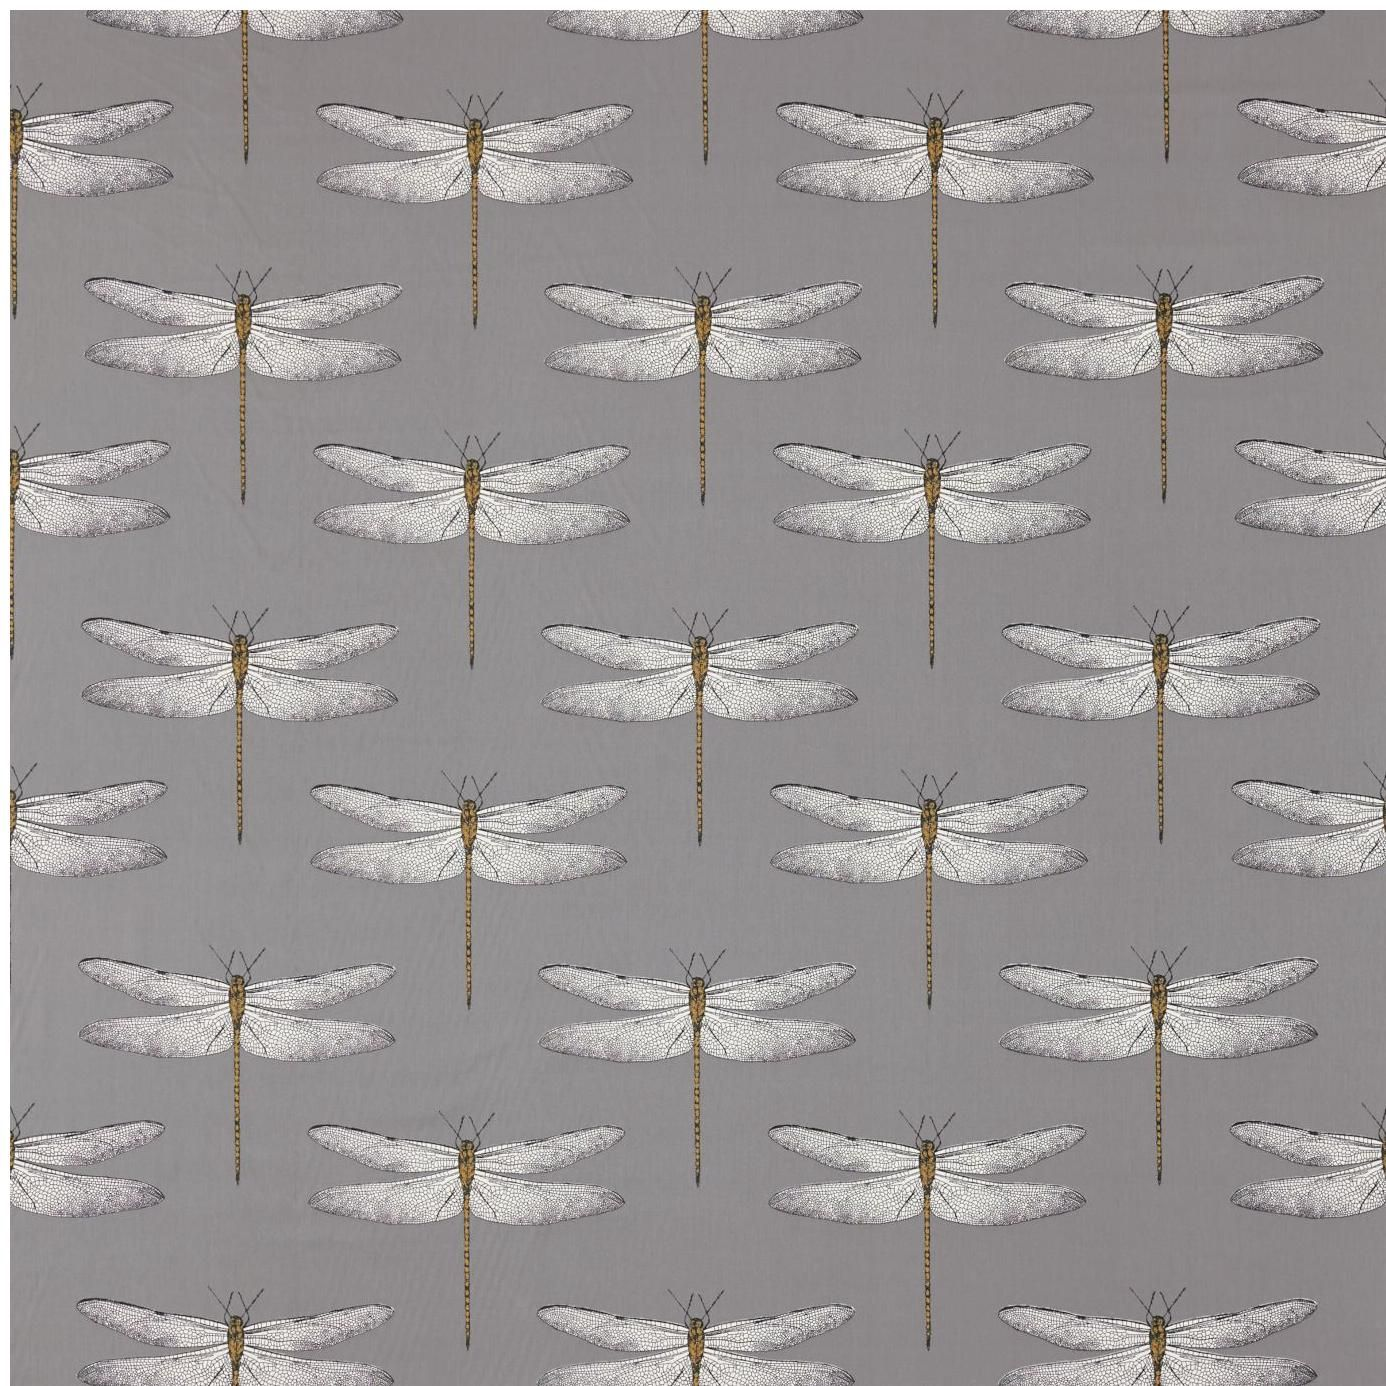 Harlequin Palmetto Demoiselle Fabric Collection 120433